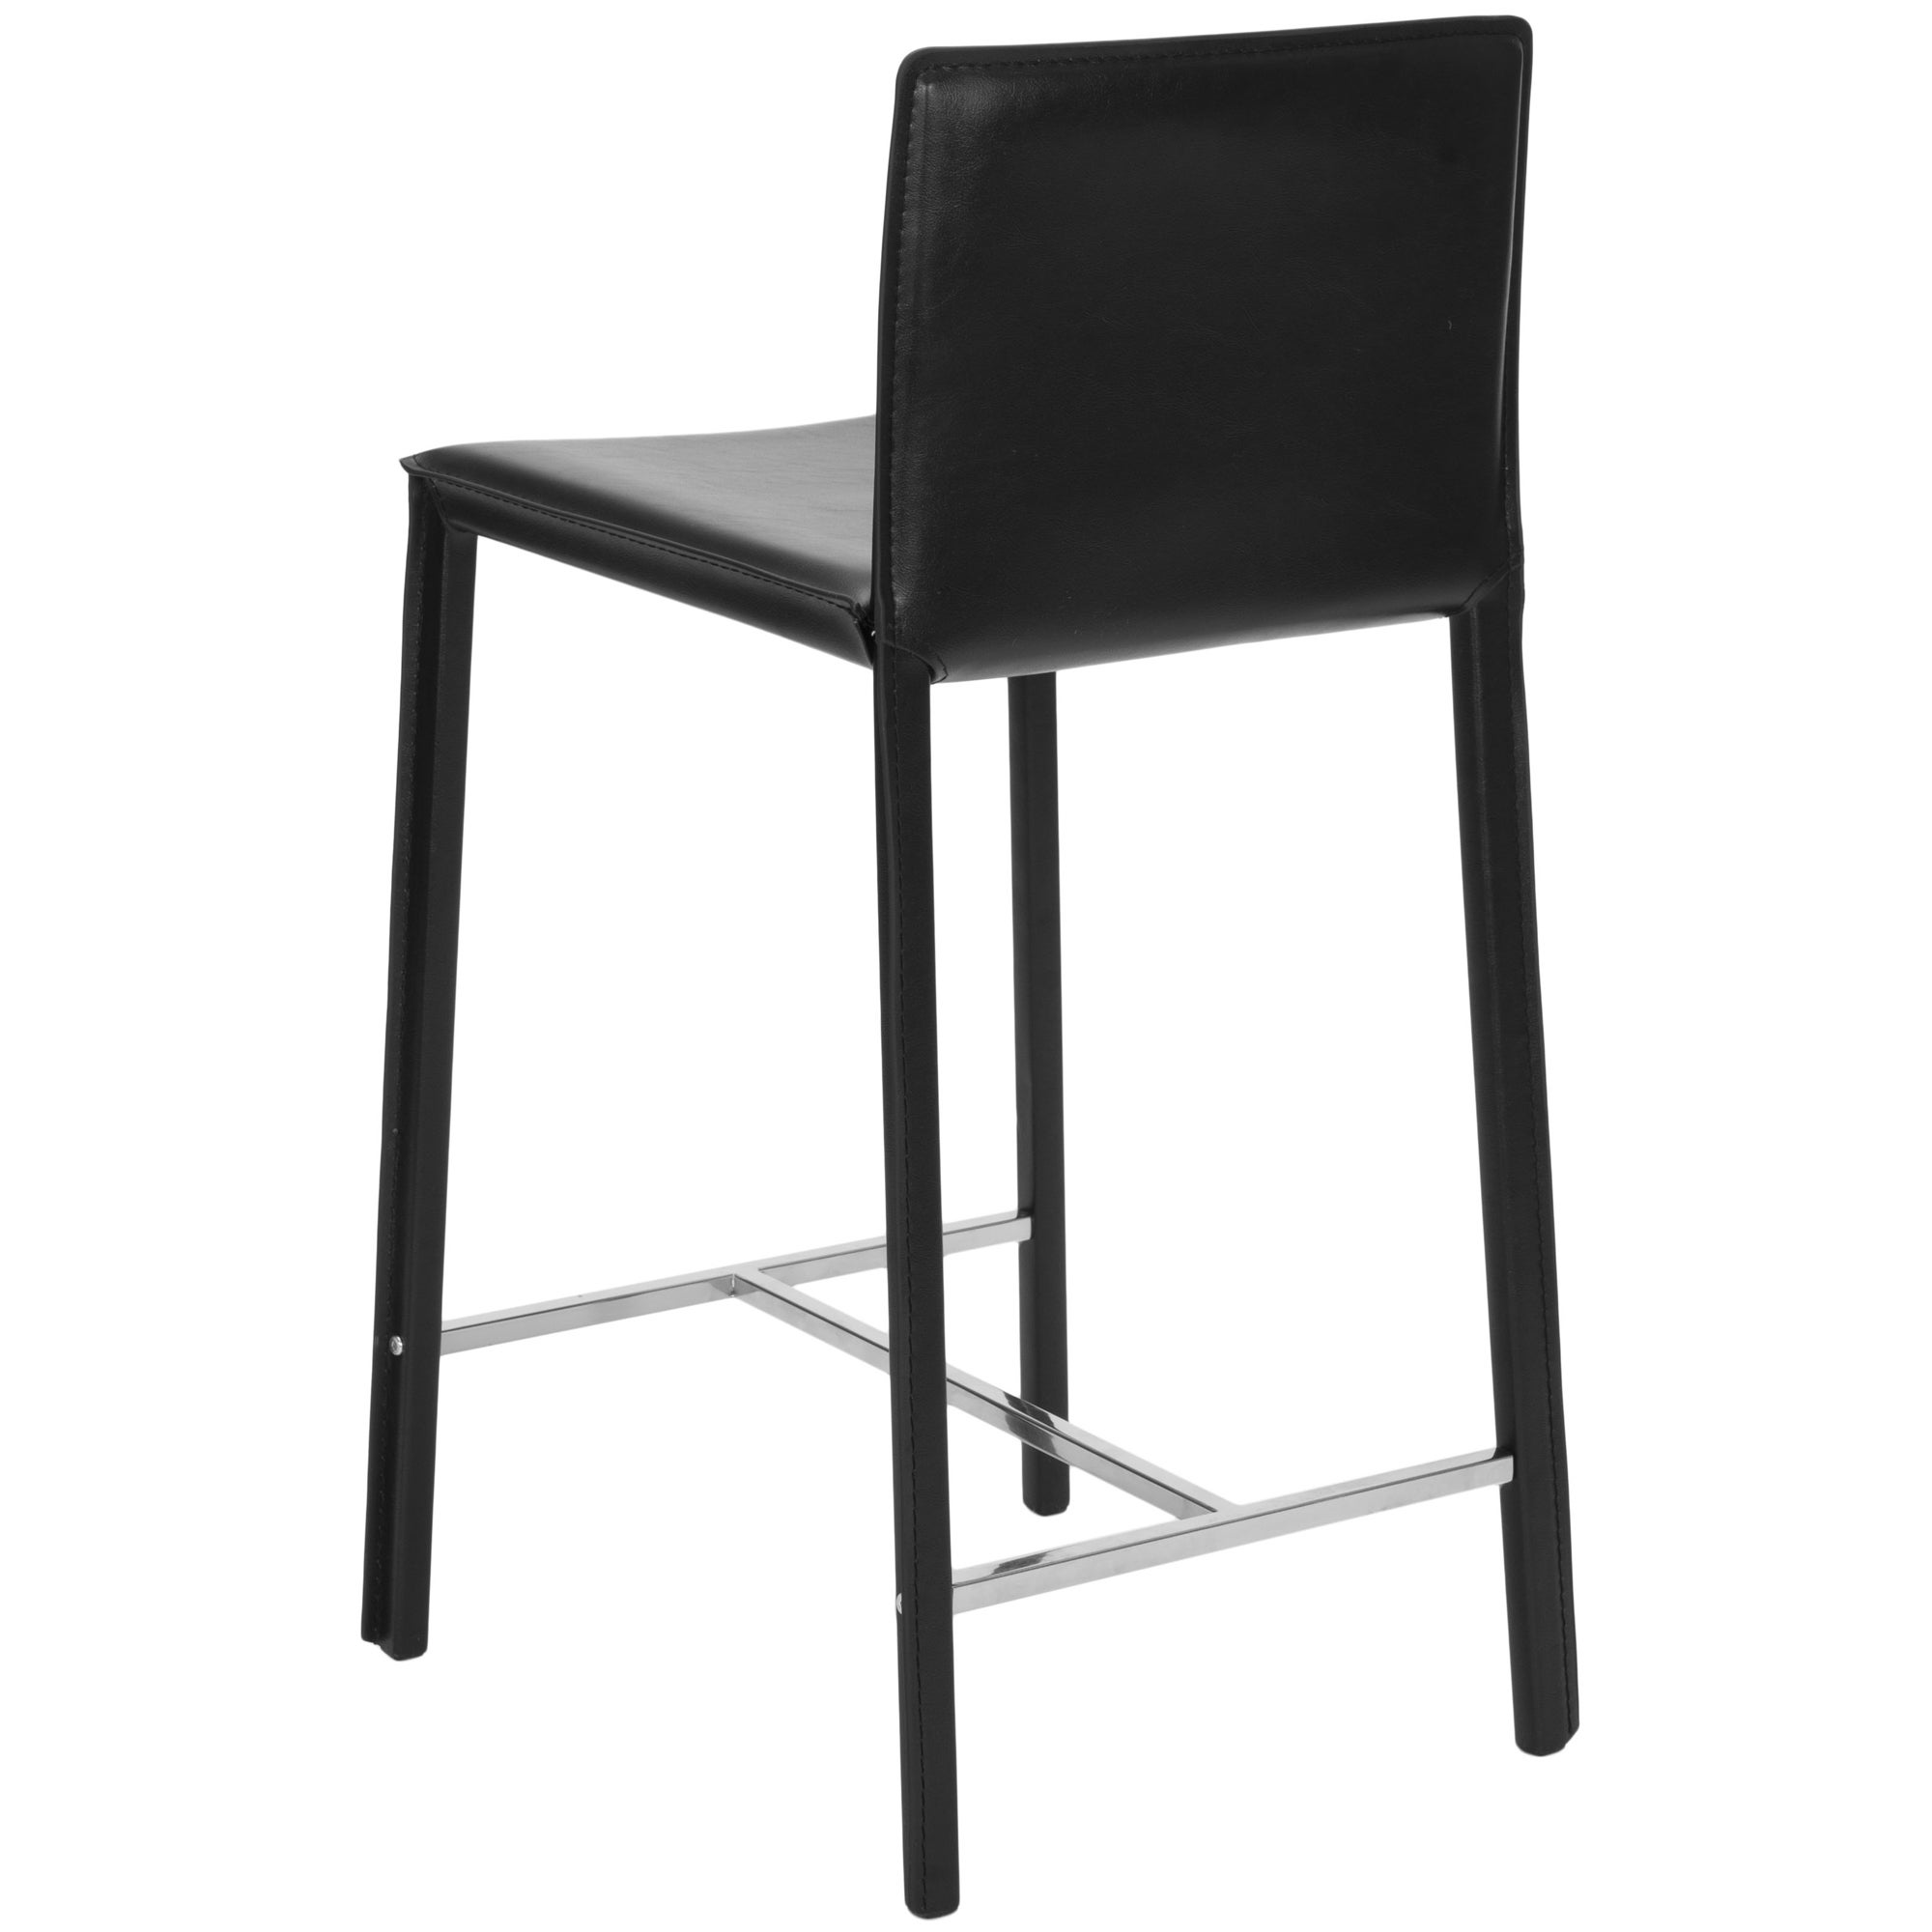 counter cfm woodworking adjustable forge master black hayneedle carson product stool stools sauder